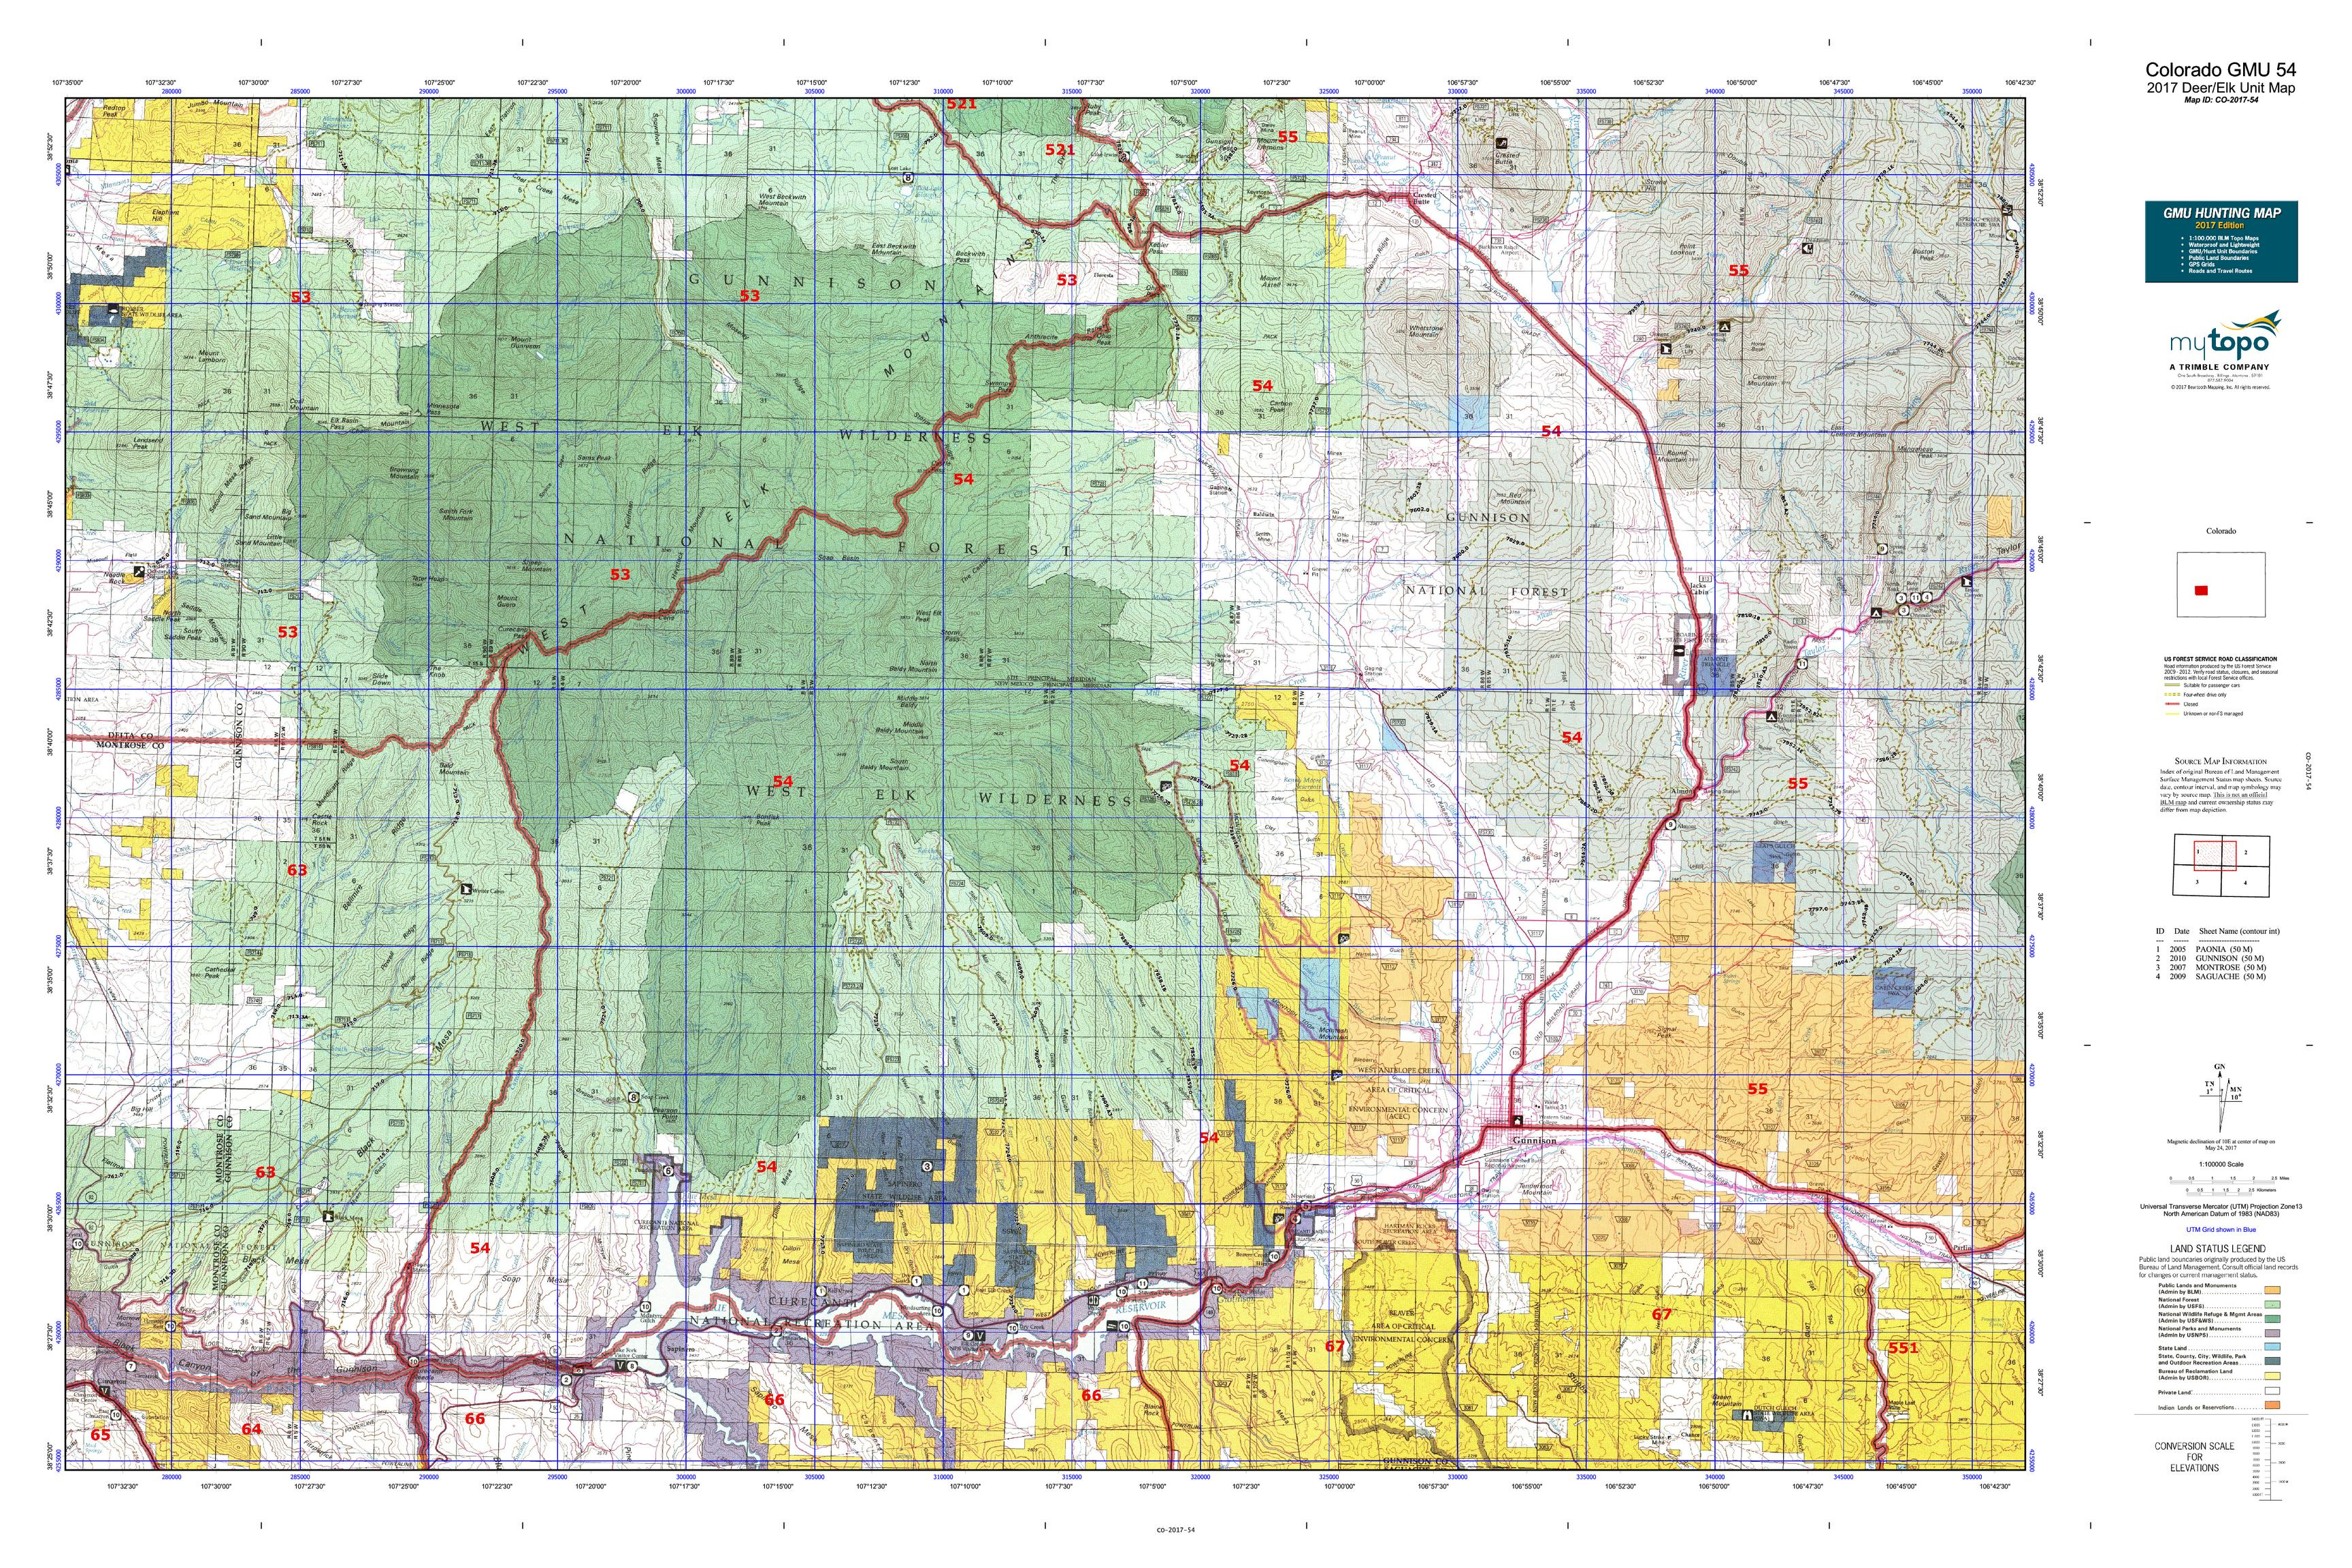 Colorado GMU Map MyTopo - Map of colorado